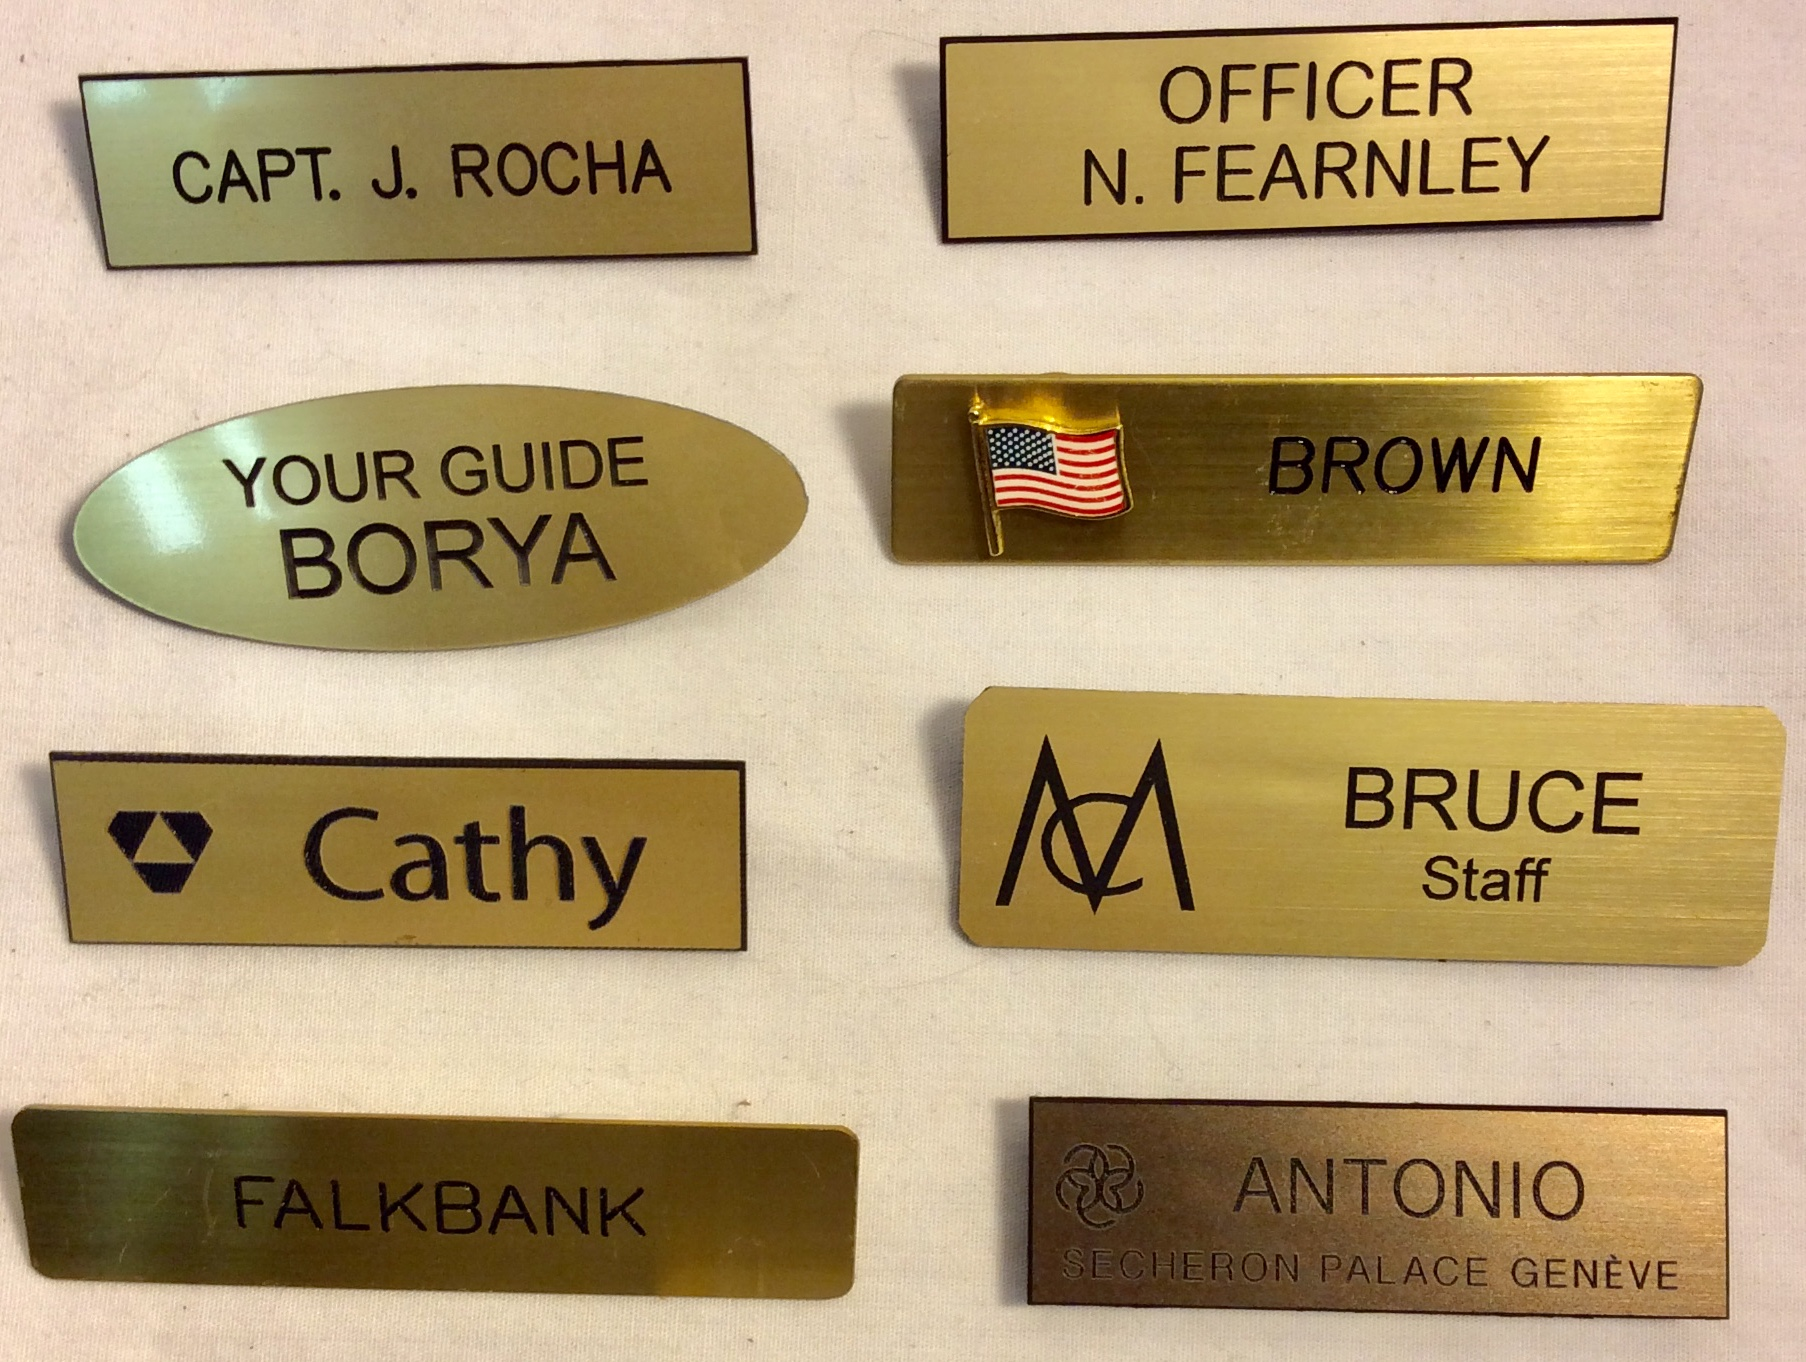 Assorted name tags with black lettering on golden